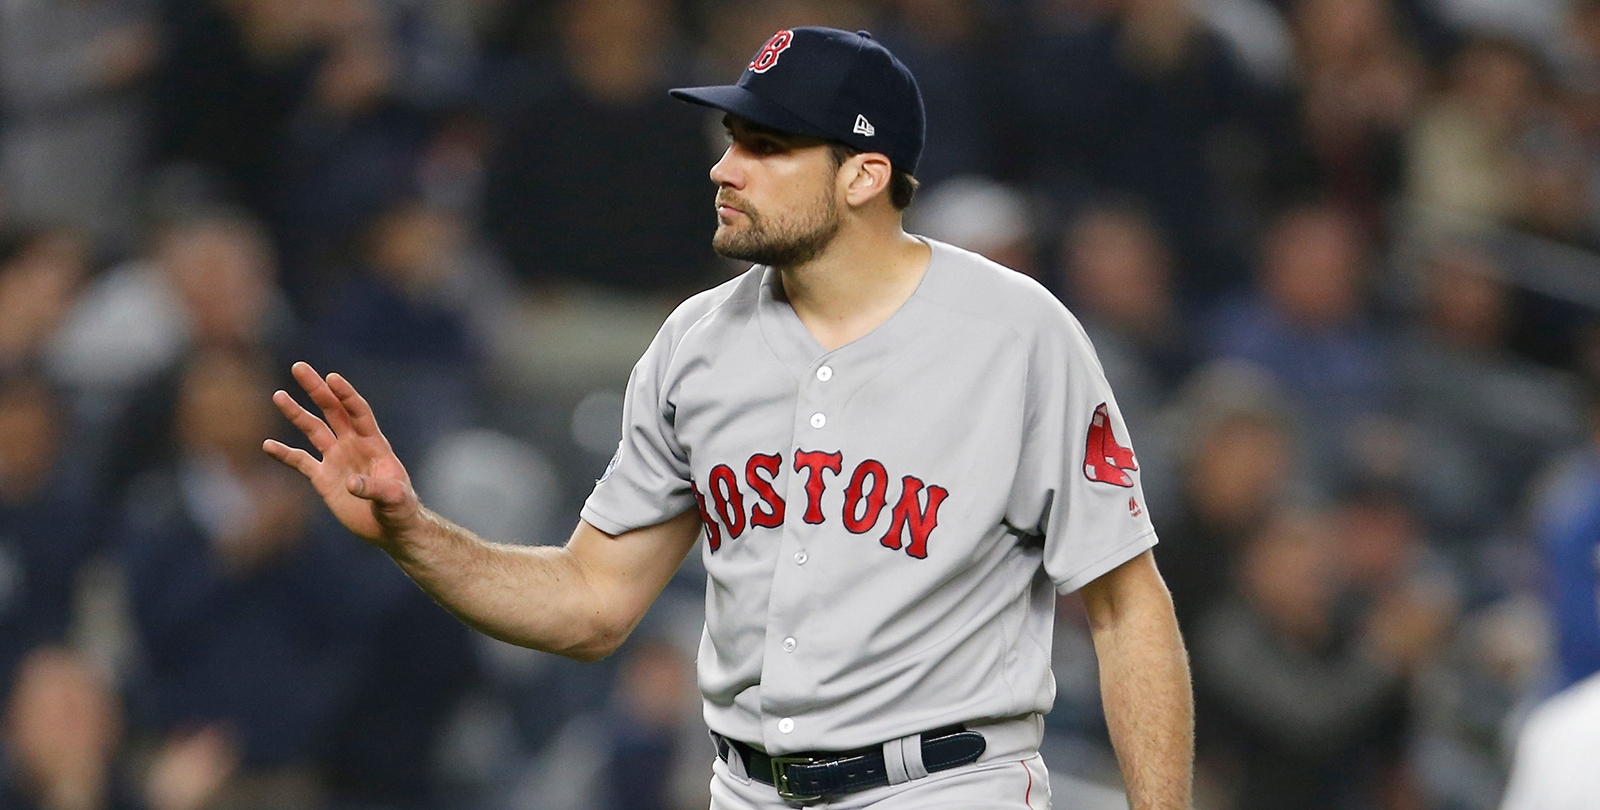 Mazz: Nathan Eovaldi is now clearly overpaid - 98.5 The Sports Hub